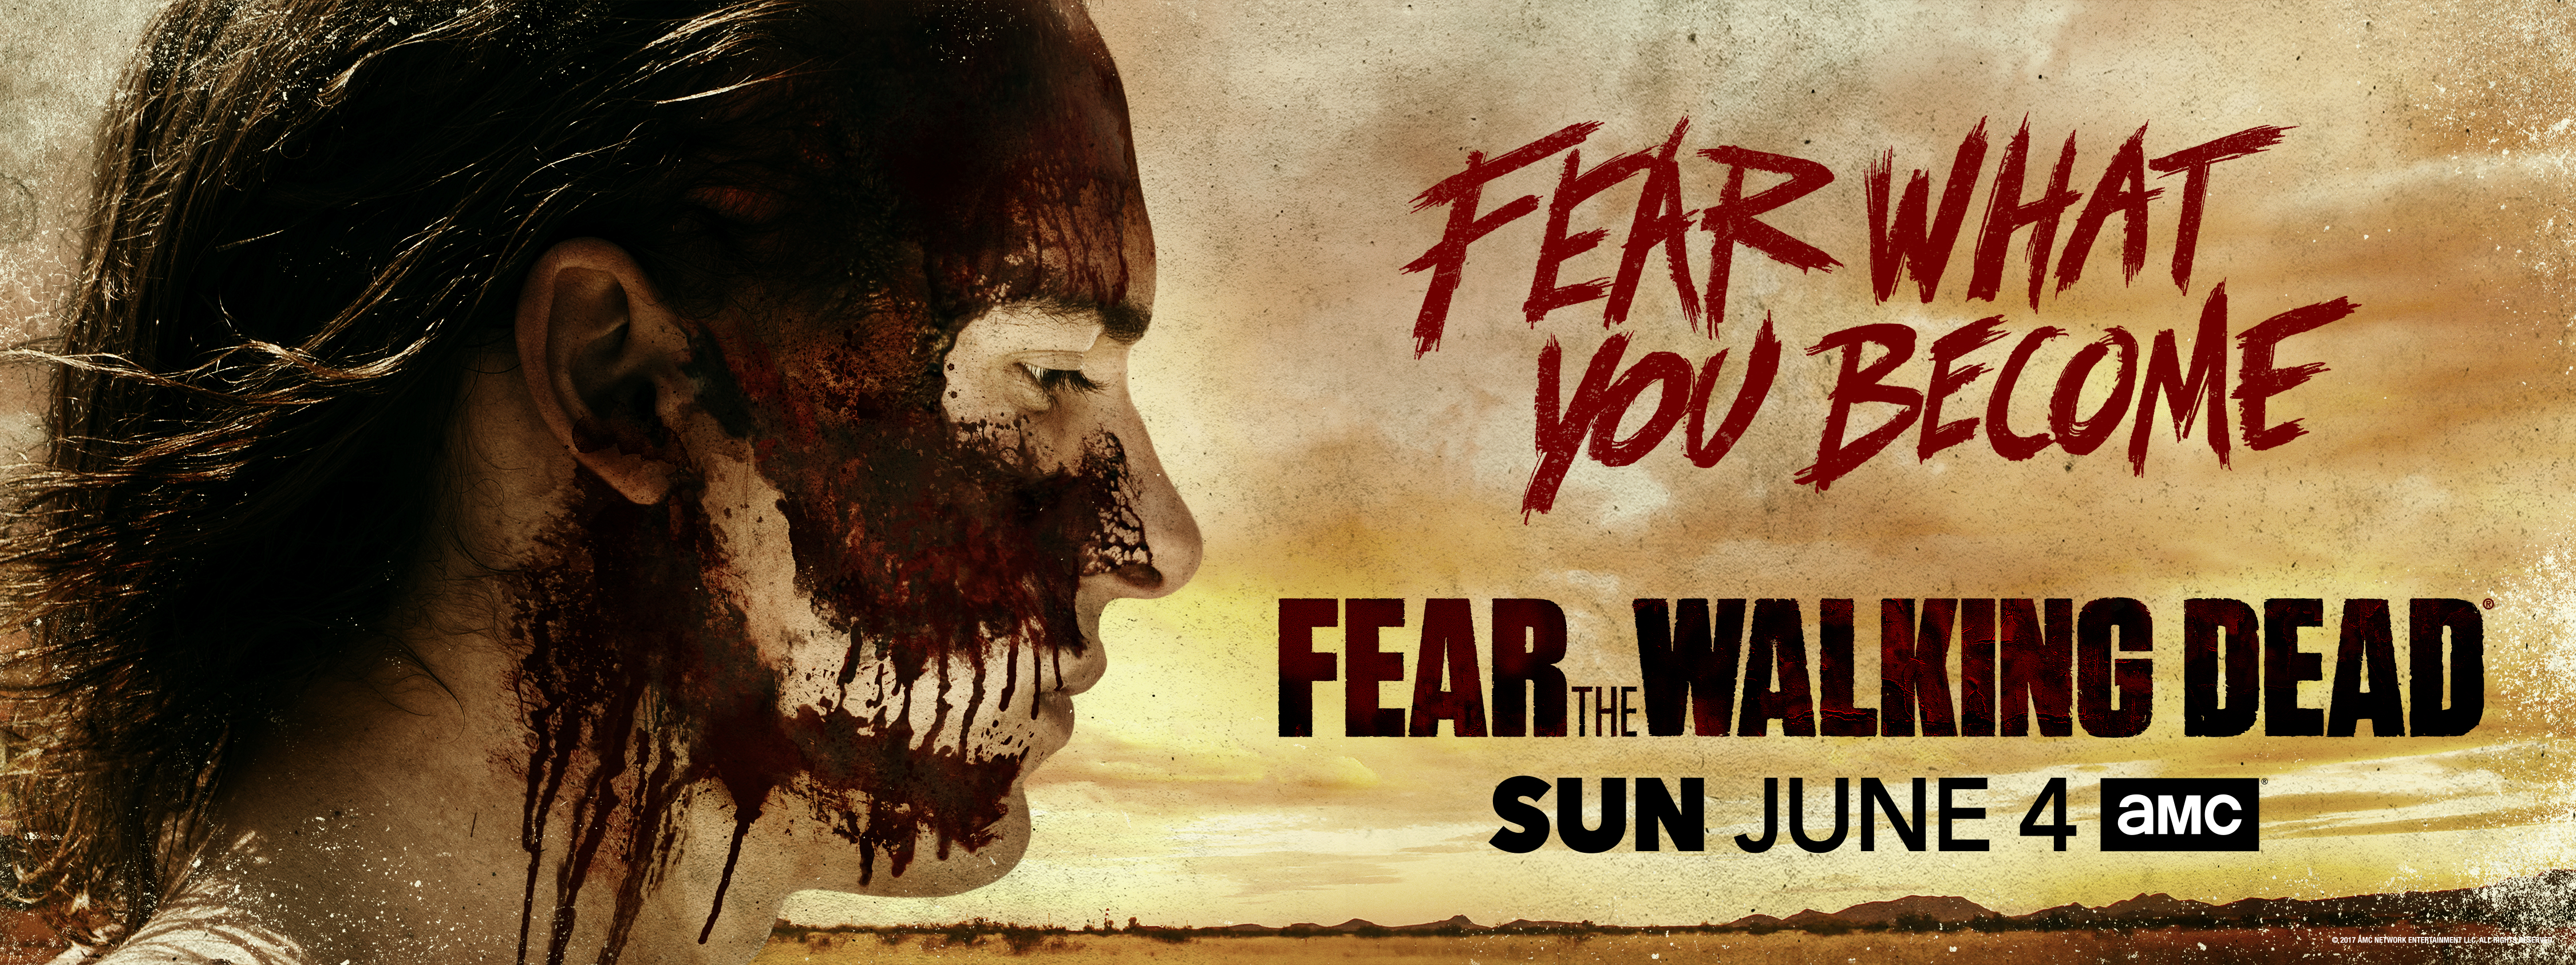 Fear Walking Dead Amc Season Three Key Art